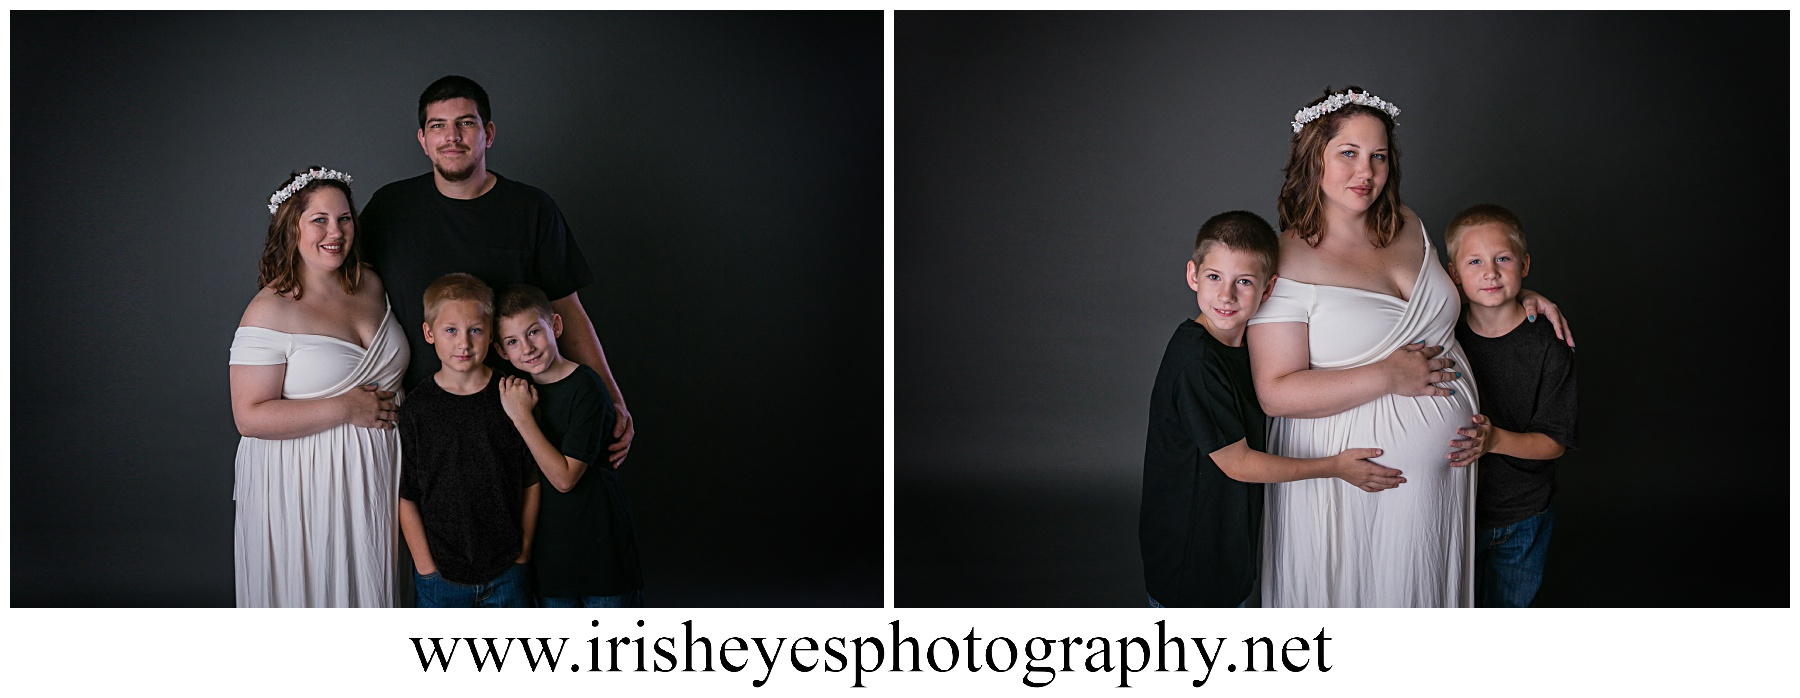 maternity photographer gahanna ohio_0266.jpg